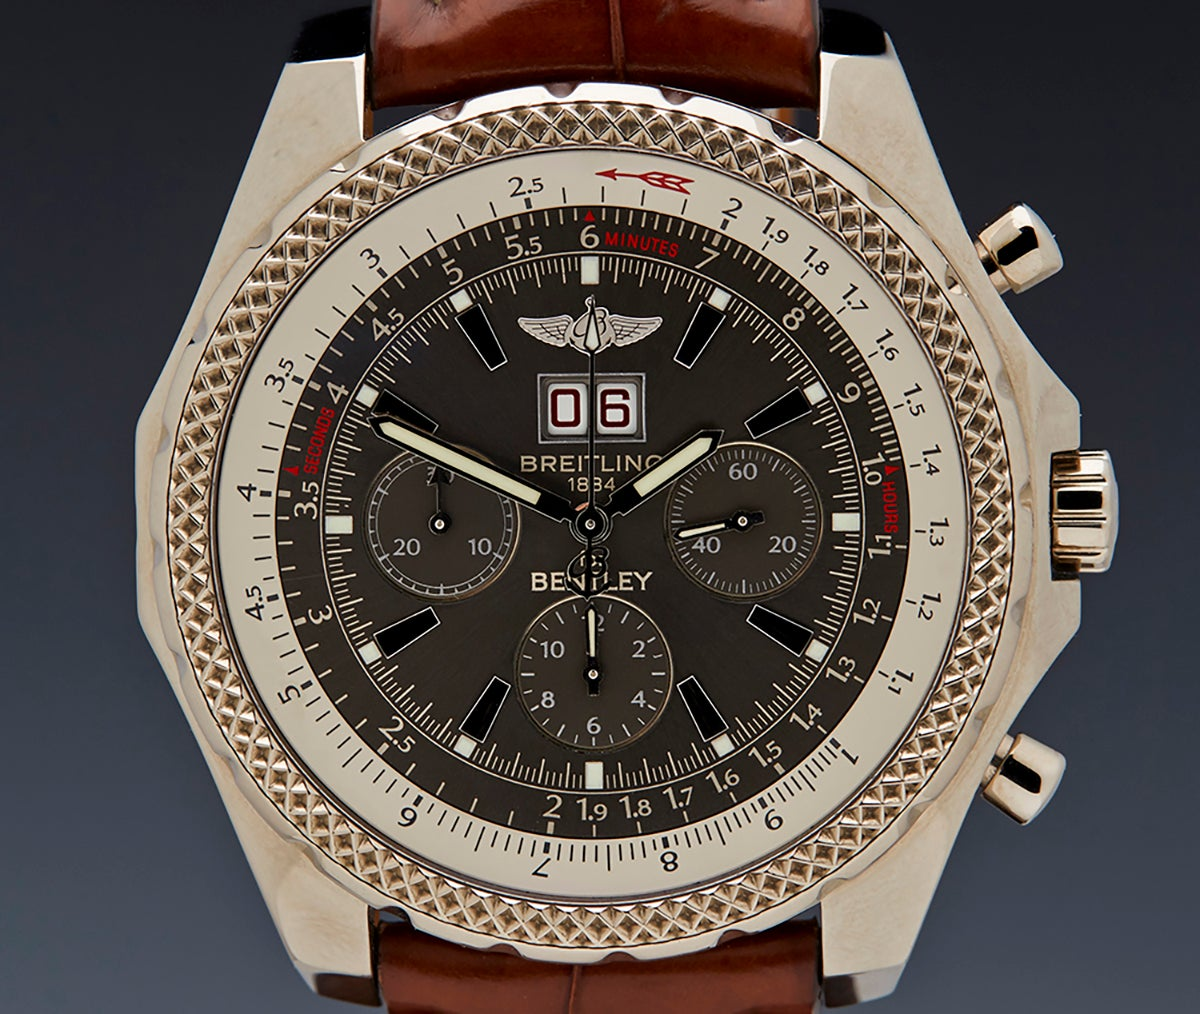 Breitling White Gold Bentley 6 75 Chronograph Limited Edition Wristwatch At 1stdibs